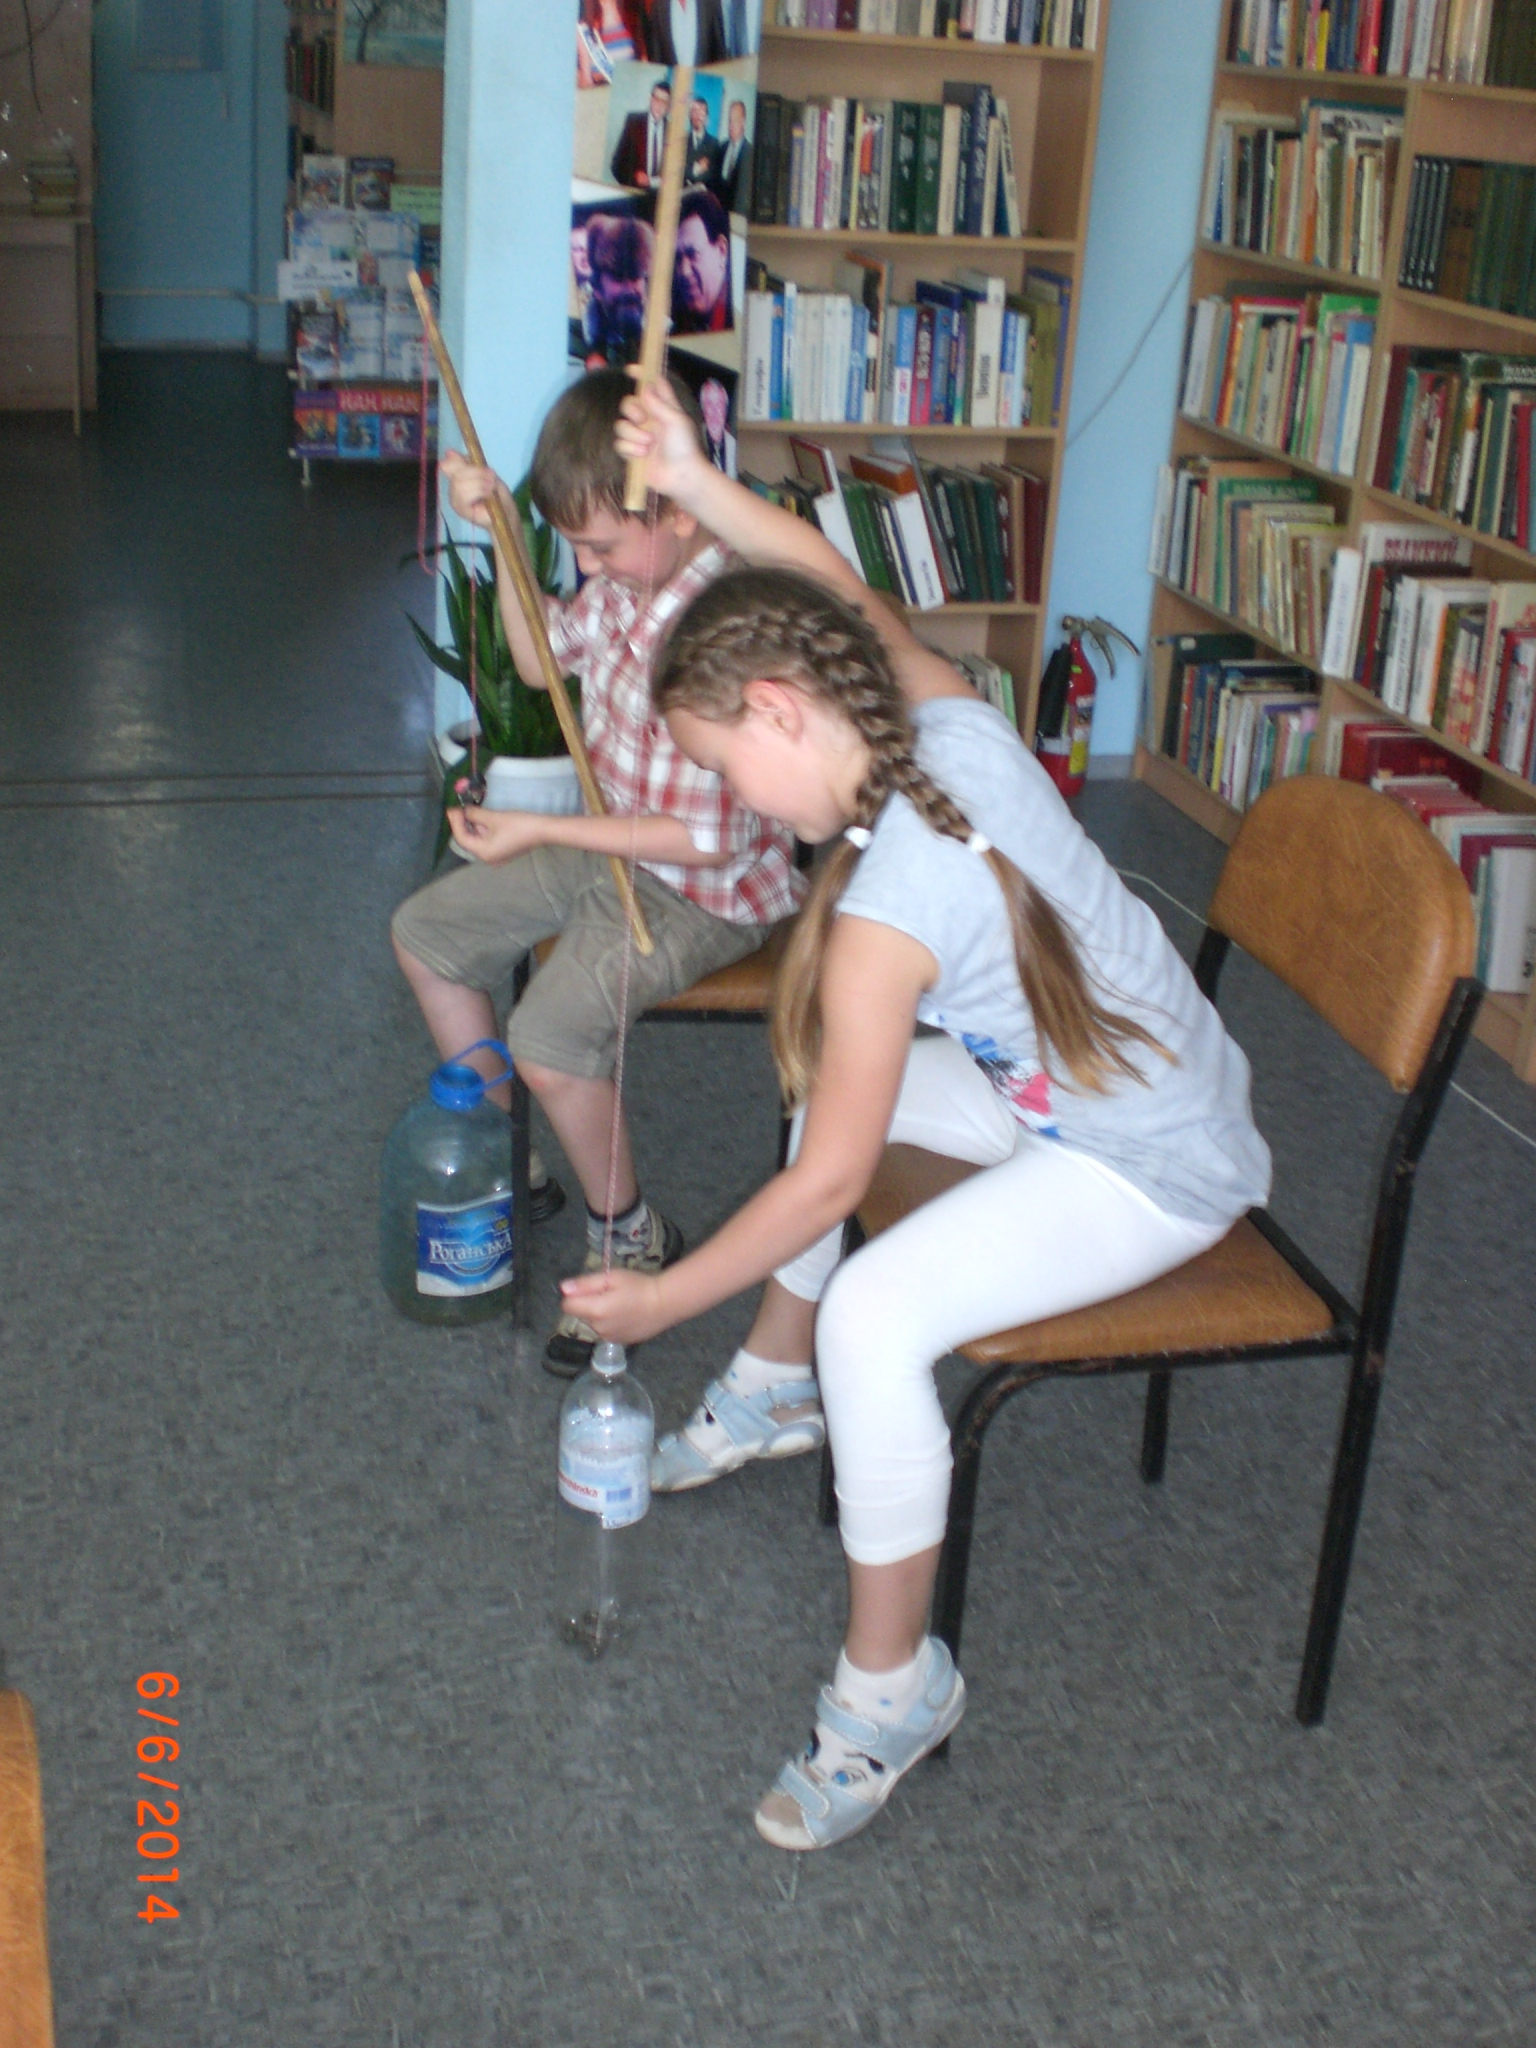 «It is interesting and useful about the nature; Fishing; - The competition between the team of girls and boys.